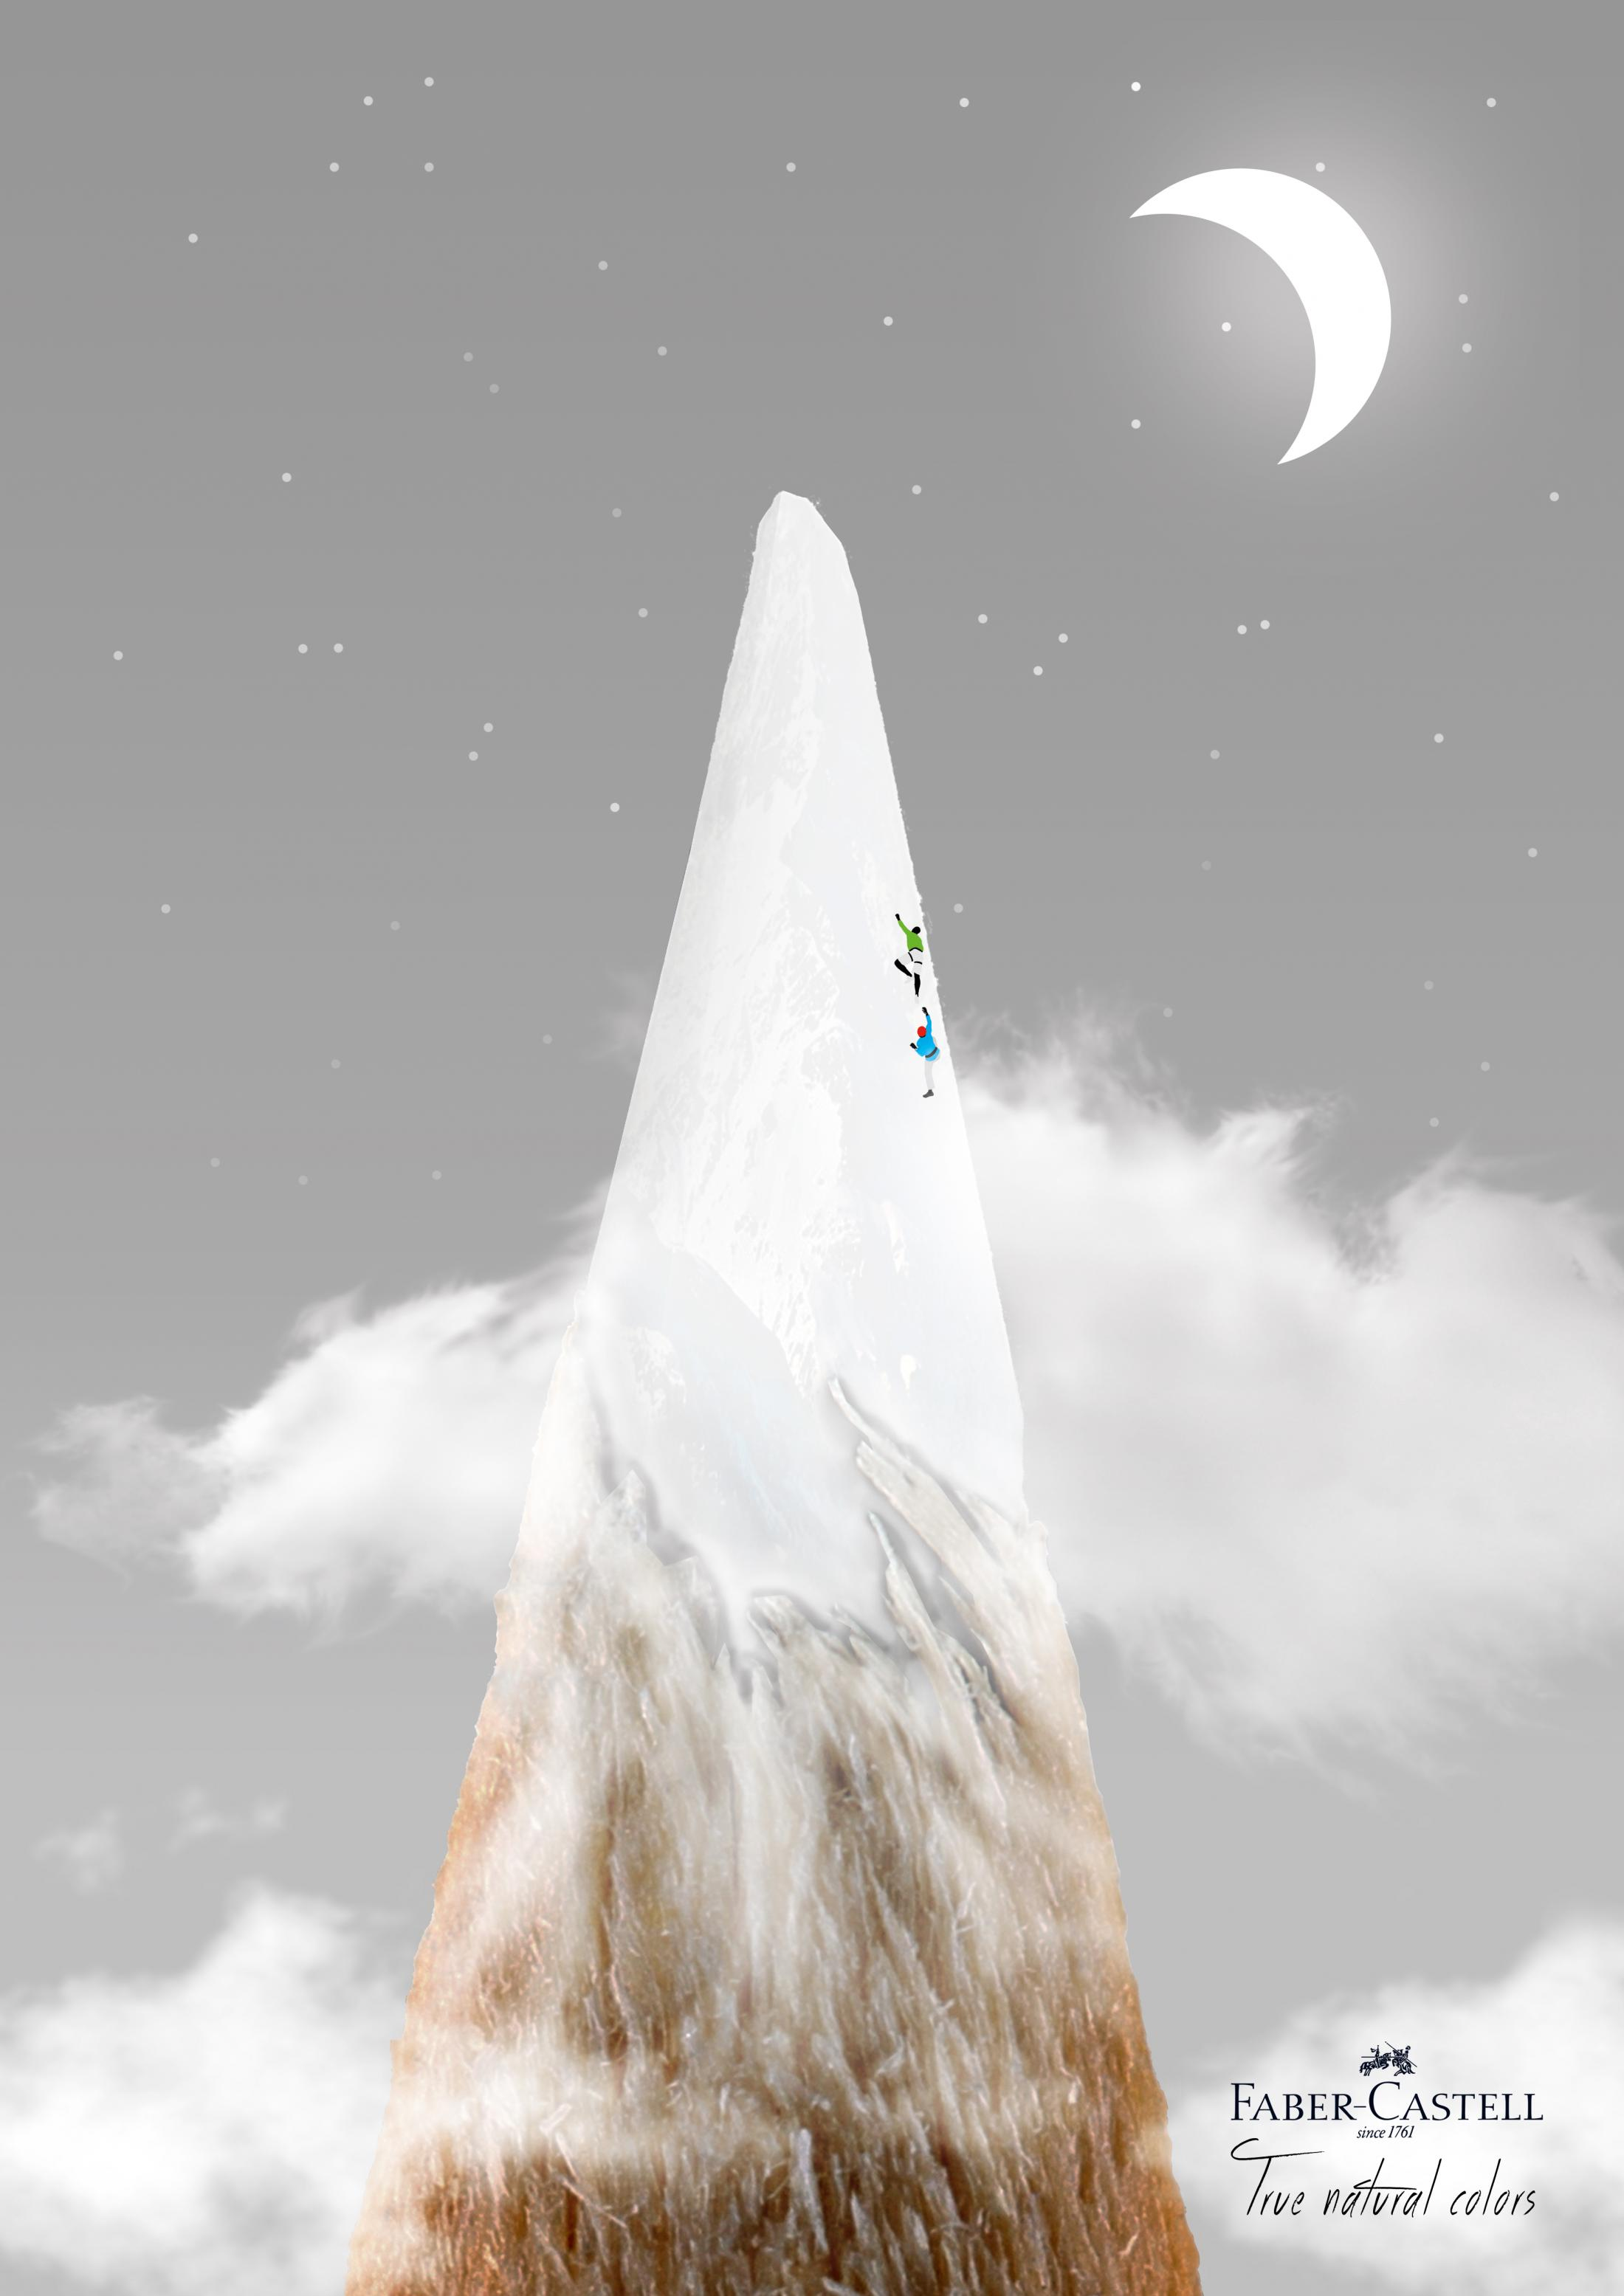 Faber Castell Print Ad - Mountain